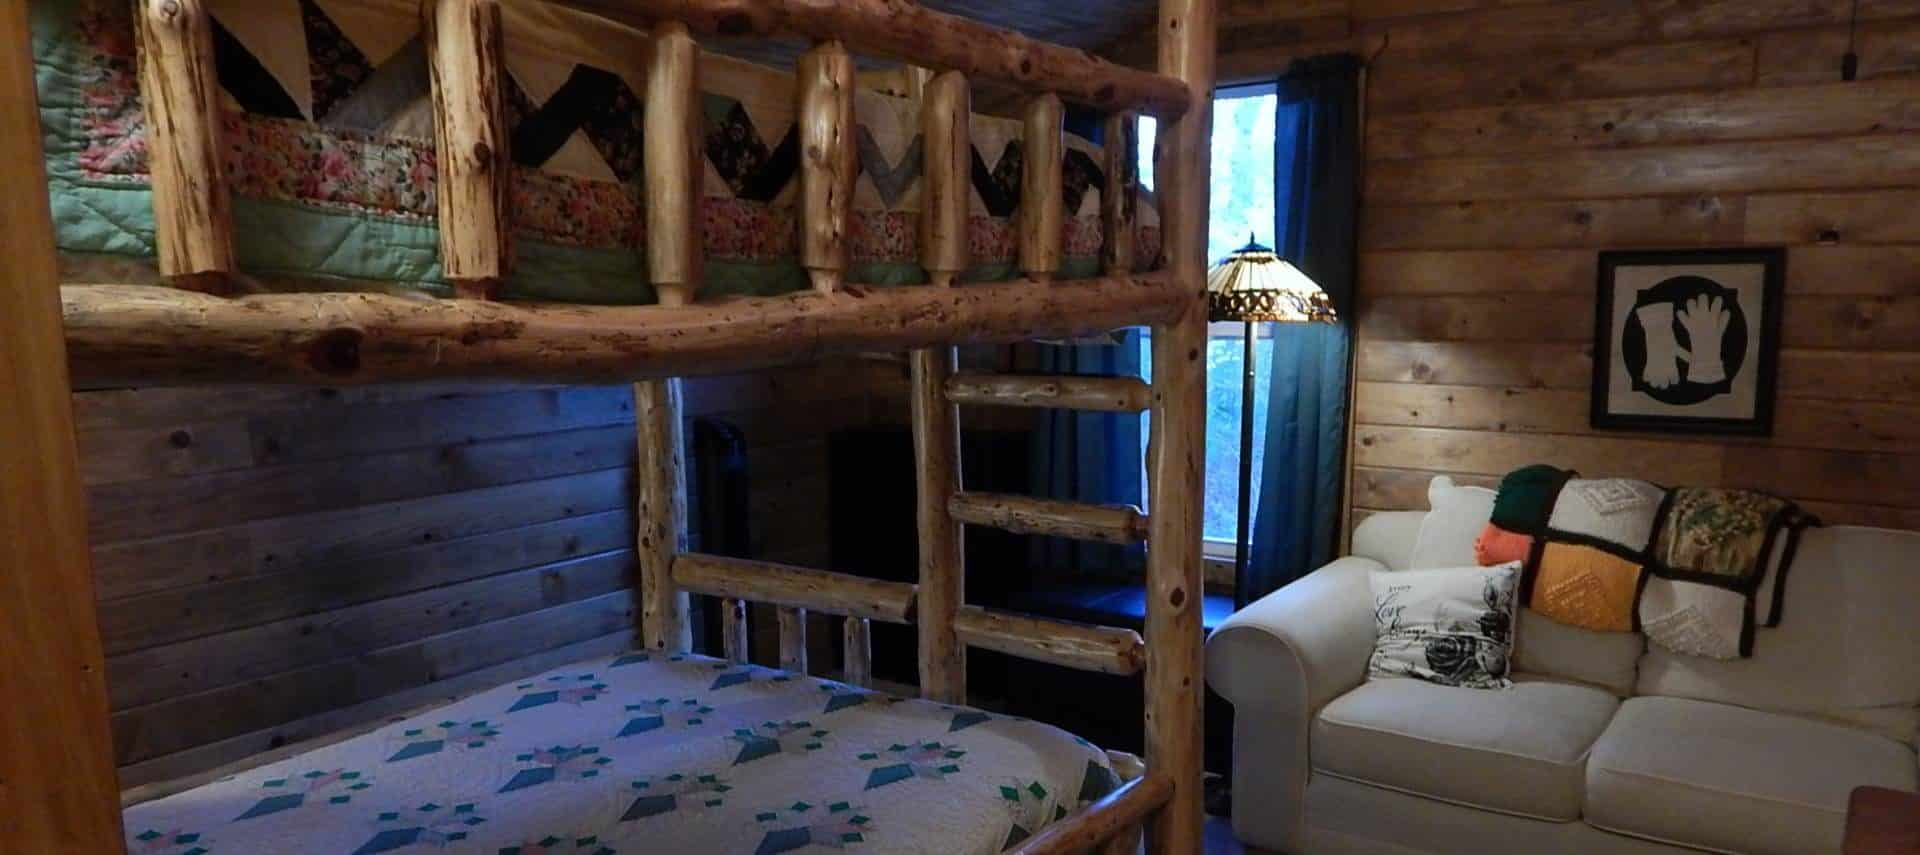 Bedroom with carpet, wood paneling on the walls, wooden bunk bed, and love seat